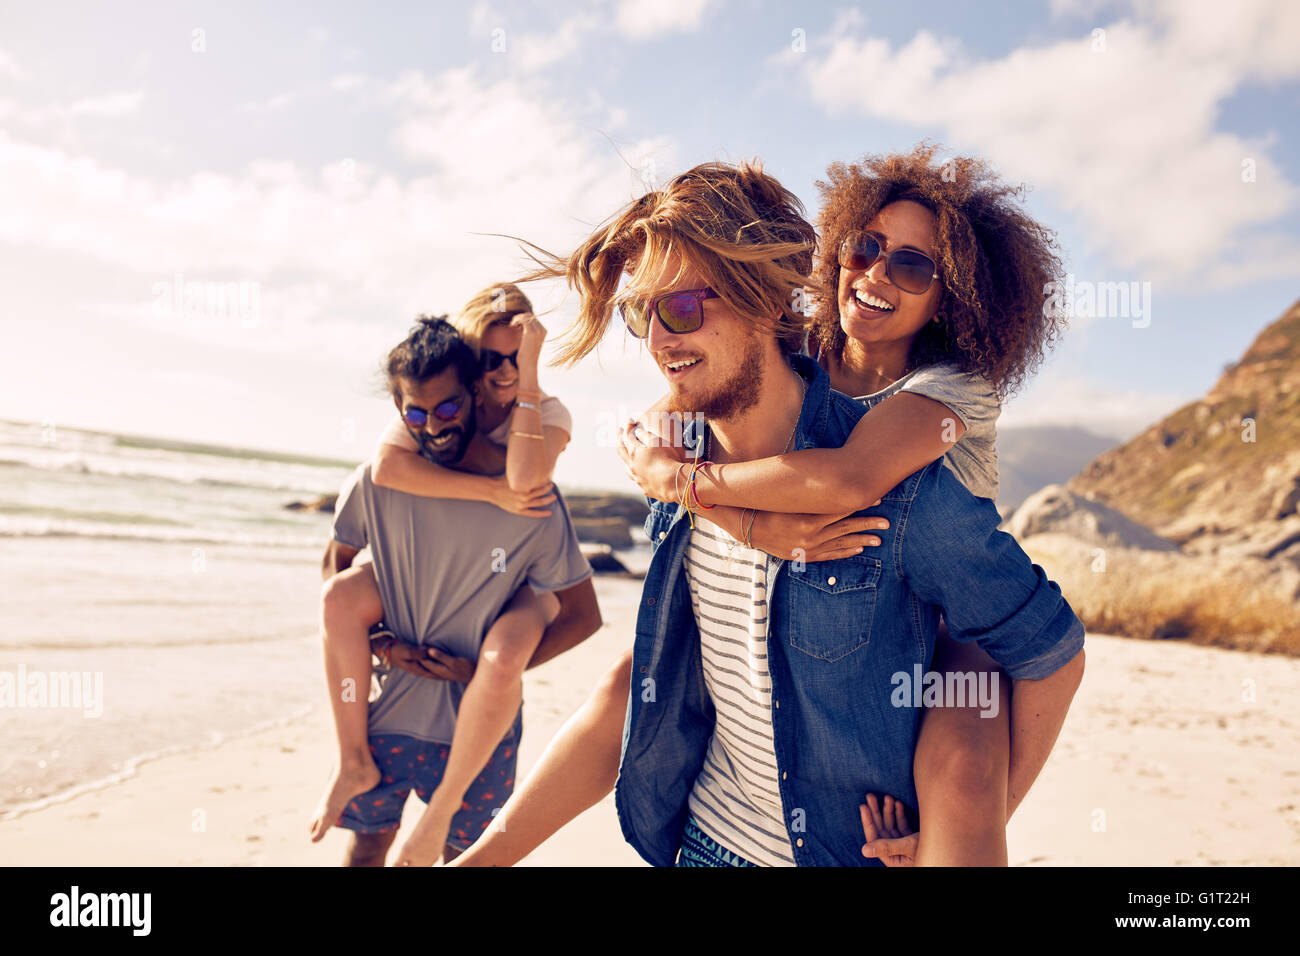 Two happy young men giving their girlfriends piggyback rides. Group of young people enjoying themselves during summertime - Stock Image